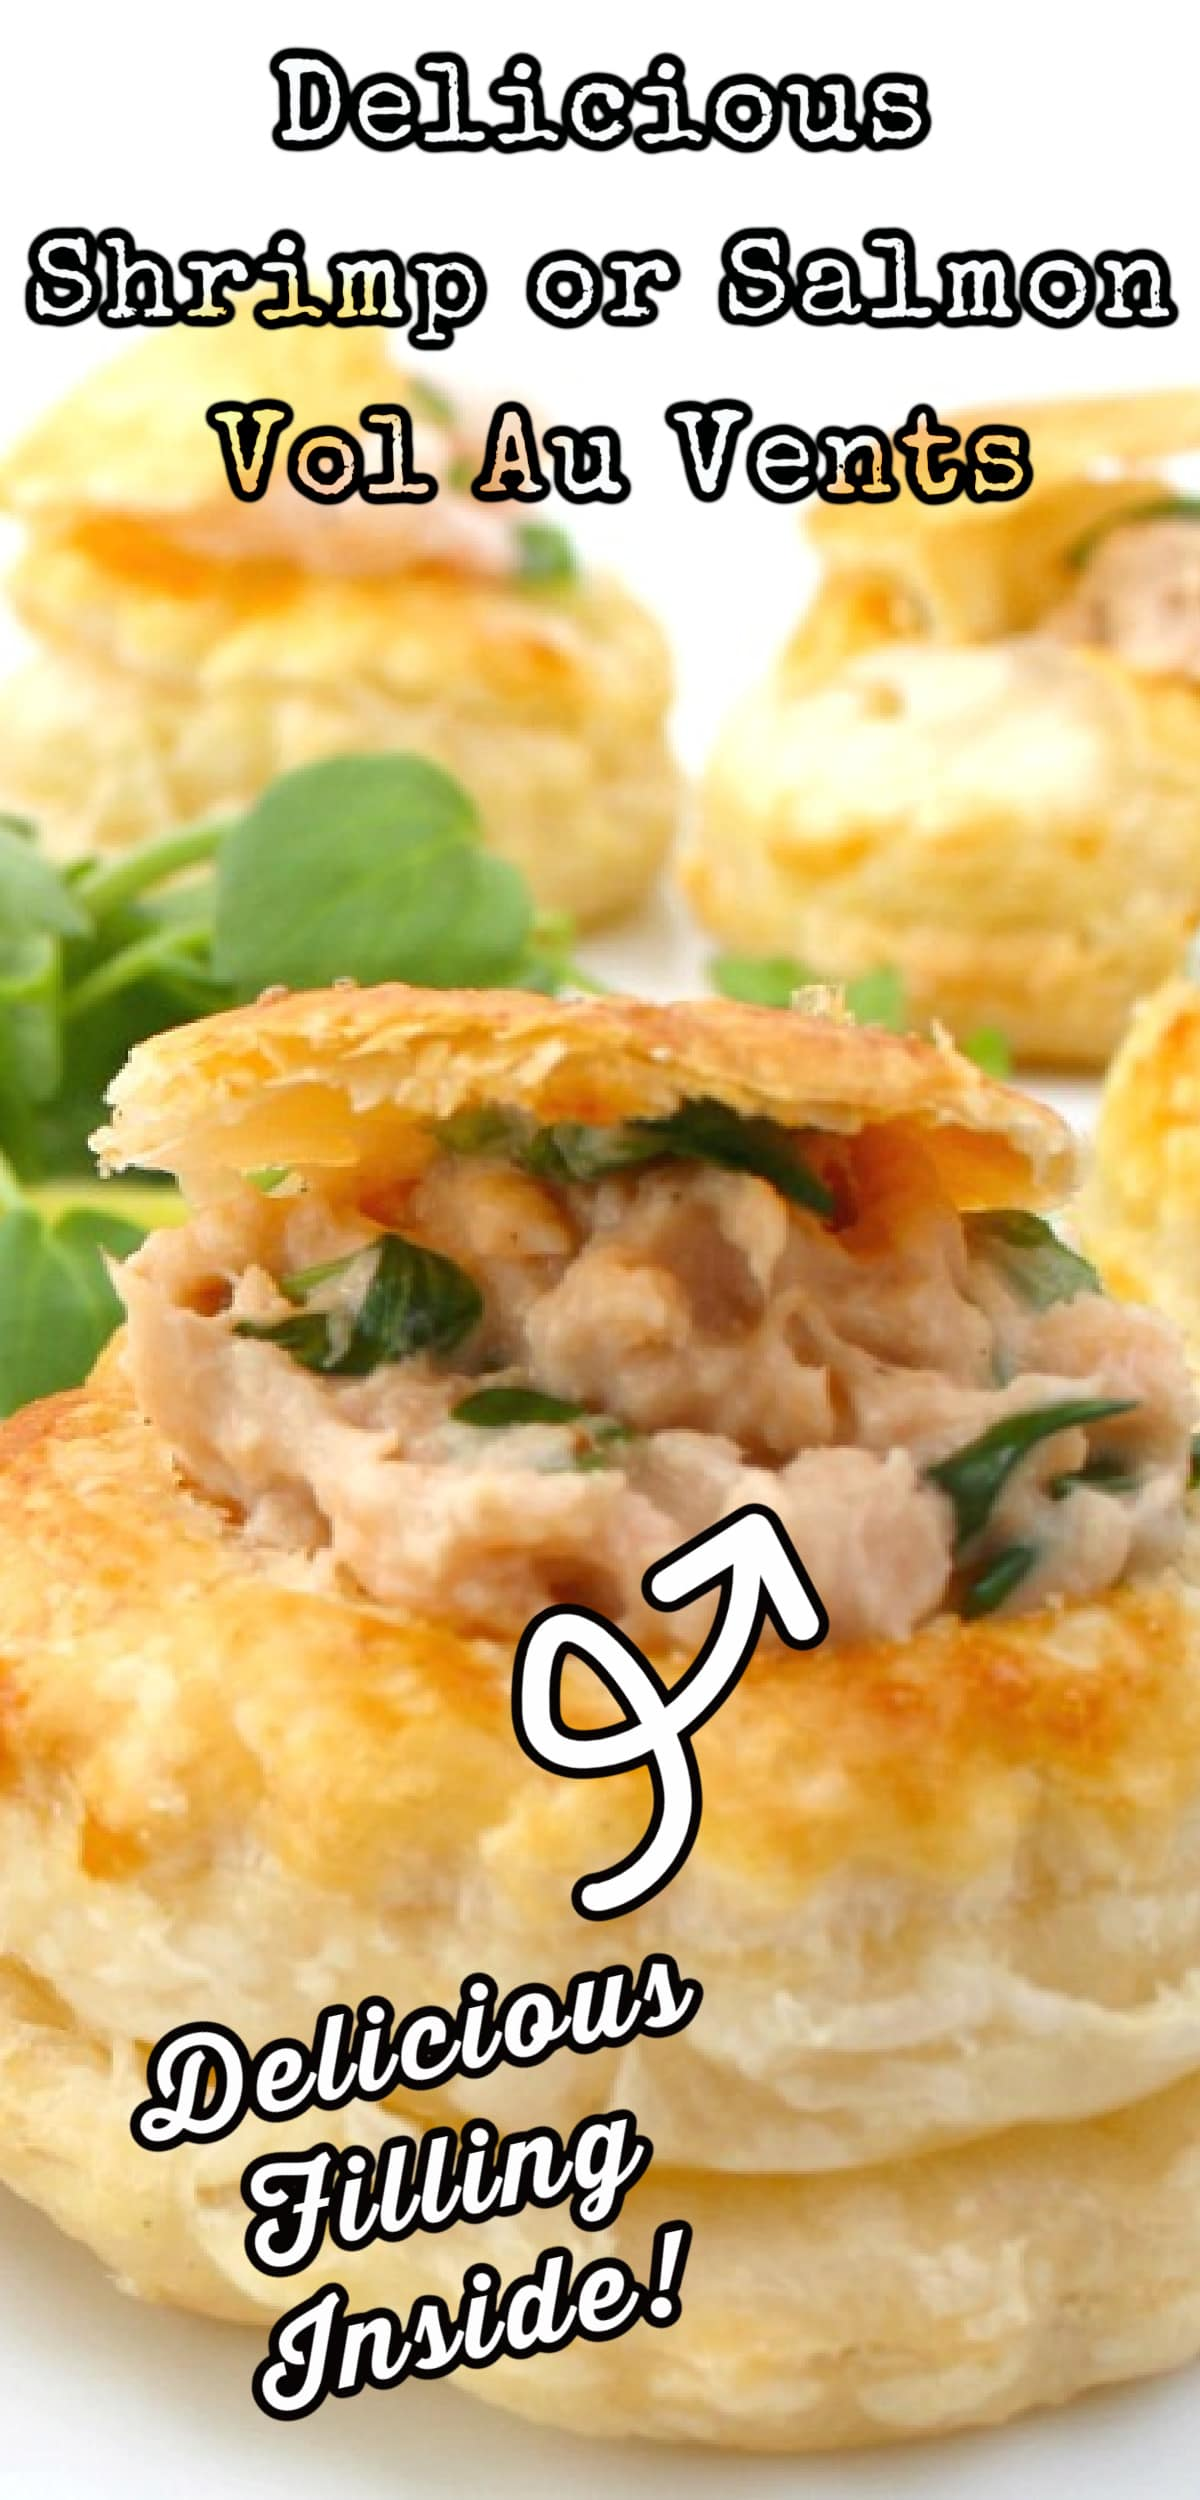 Delicious Shrimp or Salmon Vol Au Vents, Mini Puff Pastry Cups. These are very easy to make and great for parties as canapes, appetizers, and snacks. Perfect to make ahead too!